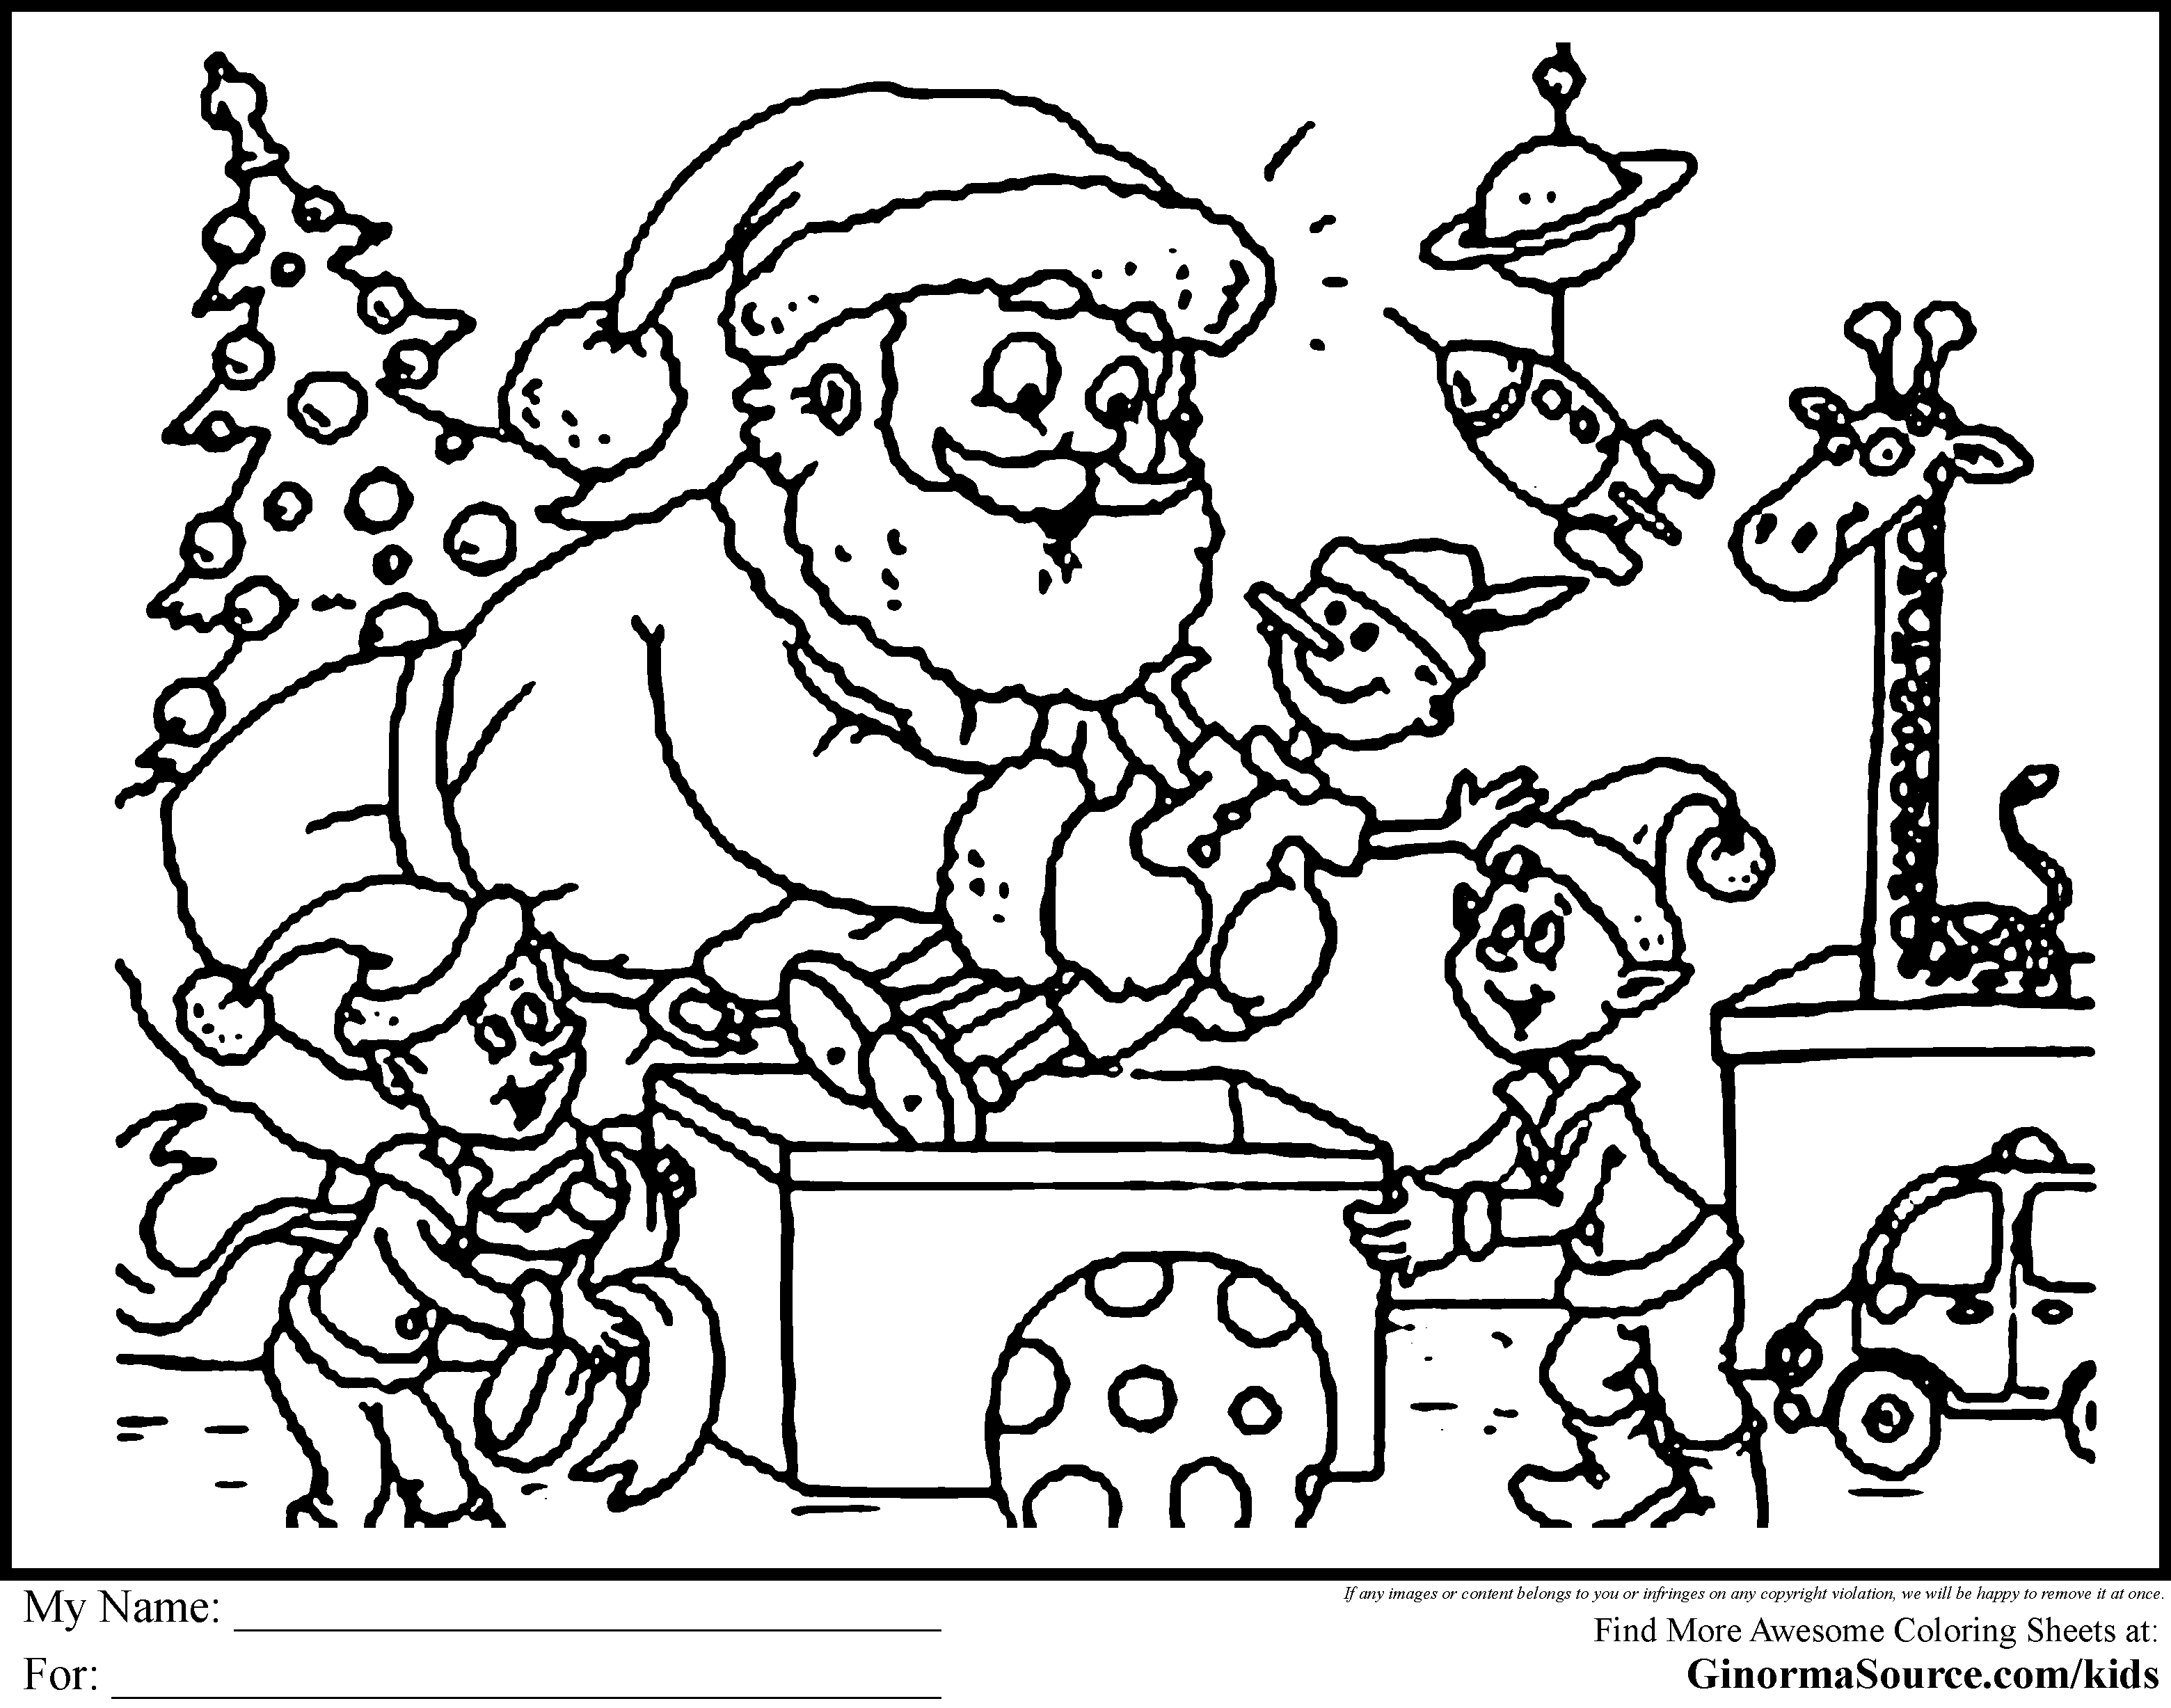 Christmas Coloring Sheet - Coloring Pages for Kids and for Adults